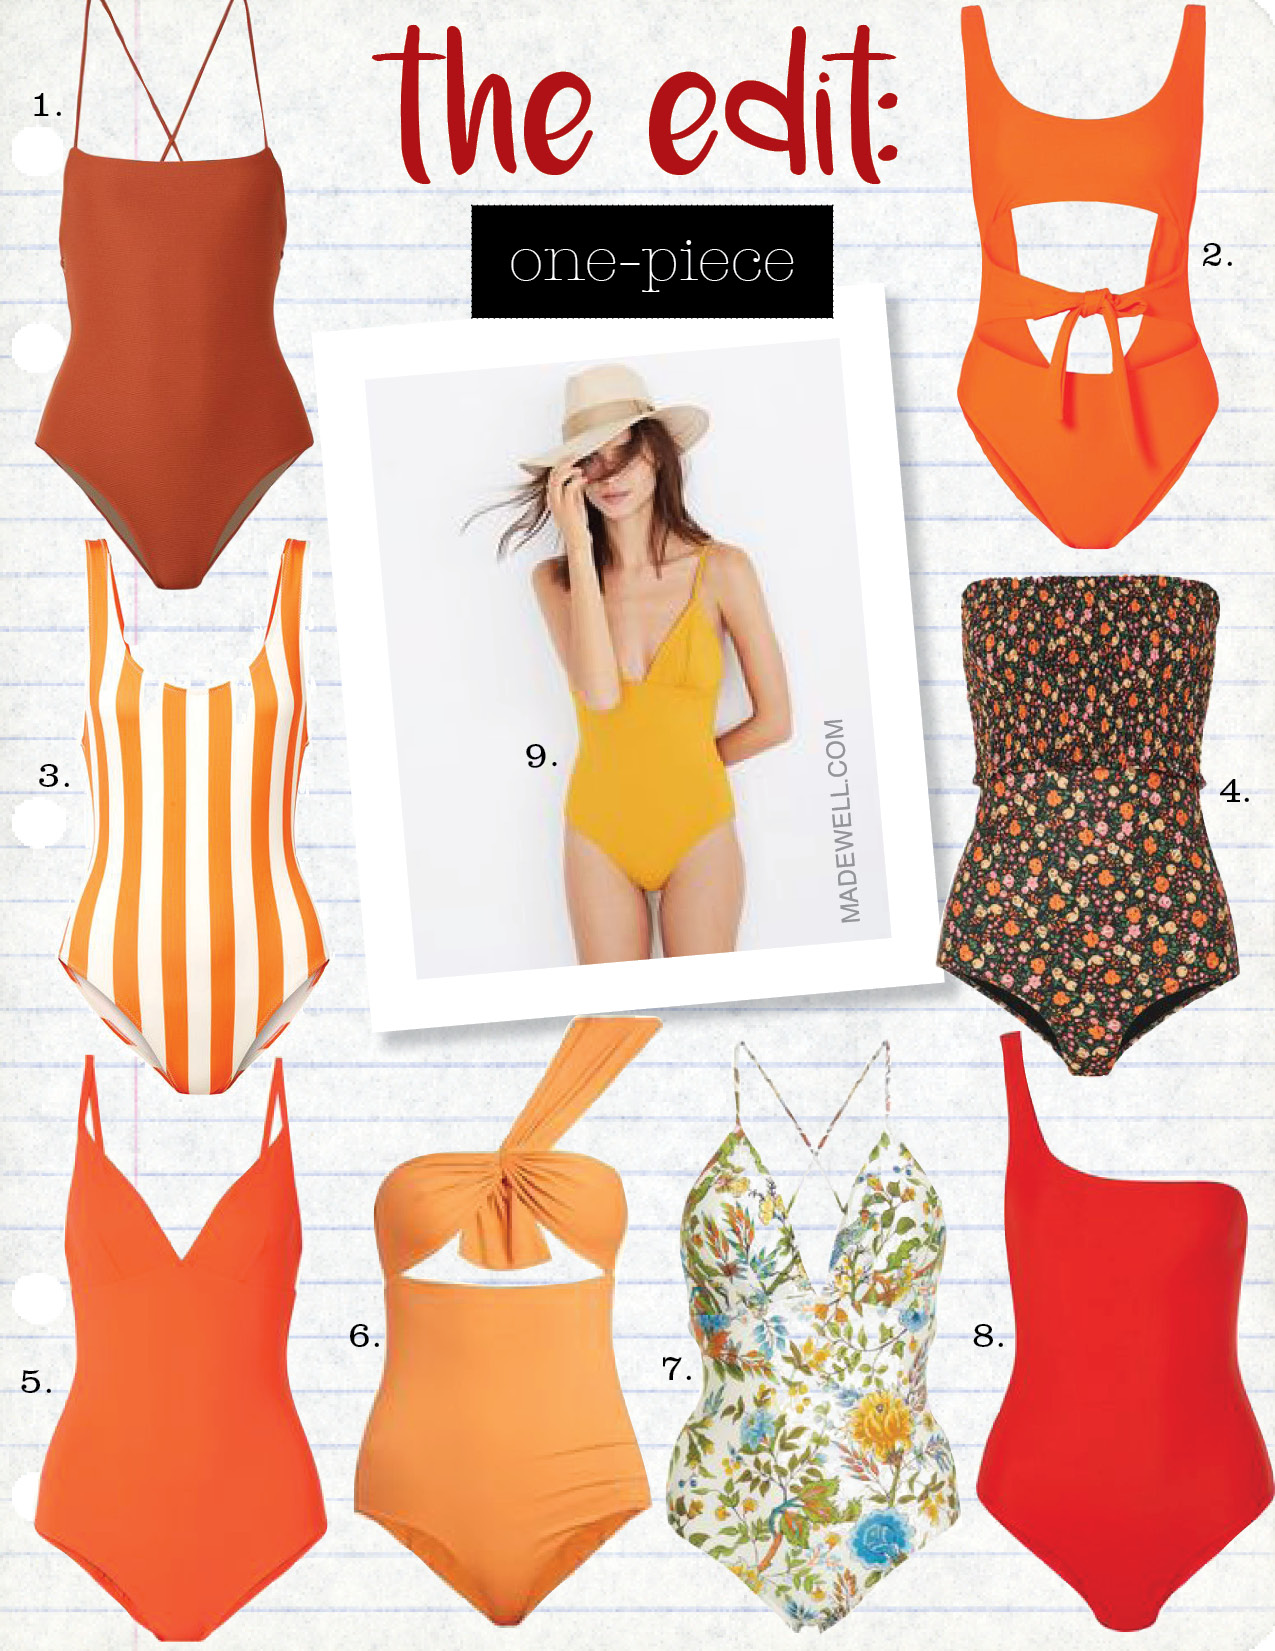 1. mara hoffman olympia ribbed swimsuit, $275,  net-a-porter.com  2. jade swim bond cutout swimsuit, $220,  net-a-porter.com  3. solid & Striped the anne-marie striped swimsuit, $170,  net-a-porter.com  4. ganni ipanema shirred floral-print halterneck swim suit, $170,  net-a-porter.com  5. tory burch marina swimsuit, $200,  net-a-porter.com  6. marysia swim venice maillot swimsuit, $340,  matchesfashion.com  7. lenny niemeyer plunge crossover back one piece swimsuit, $215,  modaoperandi.com  8. jade swim apex one-shoulder swimsuit, $200,  net-a-porter.com  9. mara hoffman virginia one-piece swimsuit, $250,  madewell.com